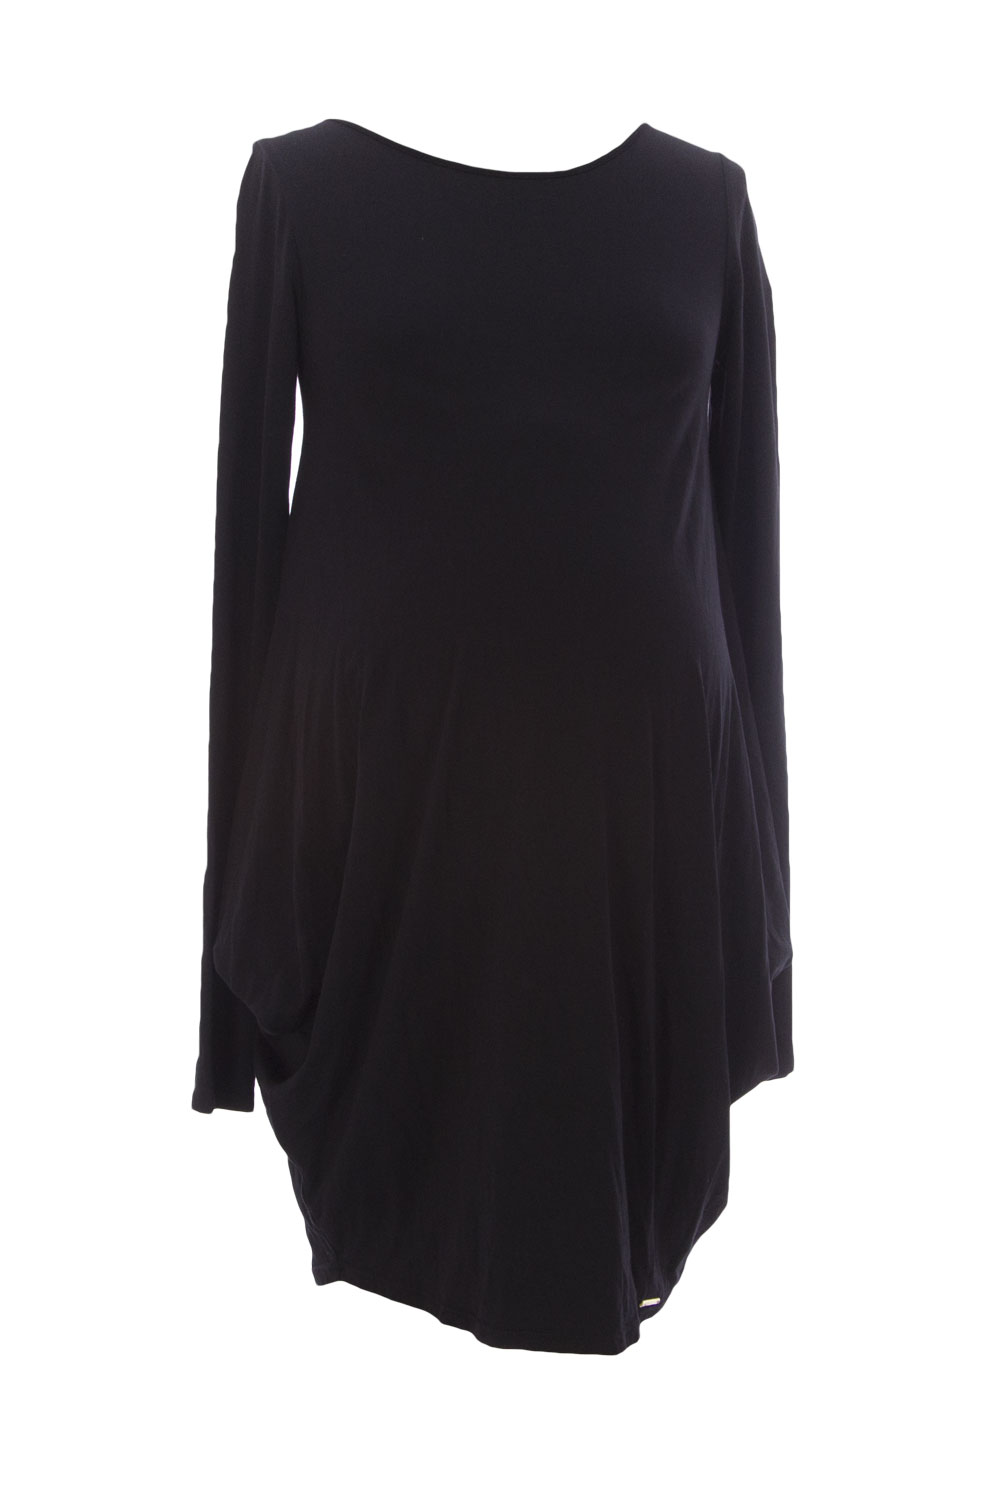 9FASHION Maternity Women's Elfri Long Tunic, Small, Black